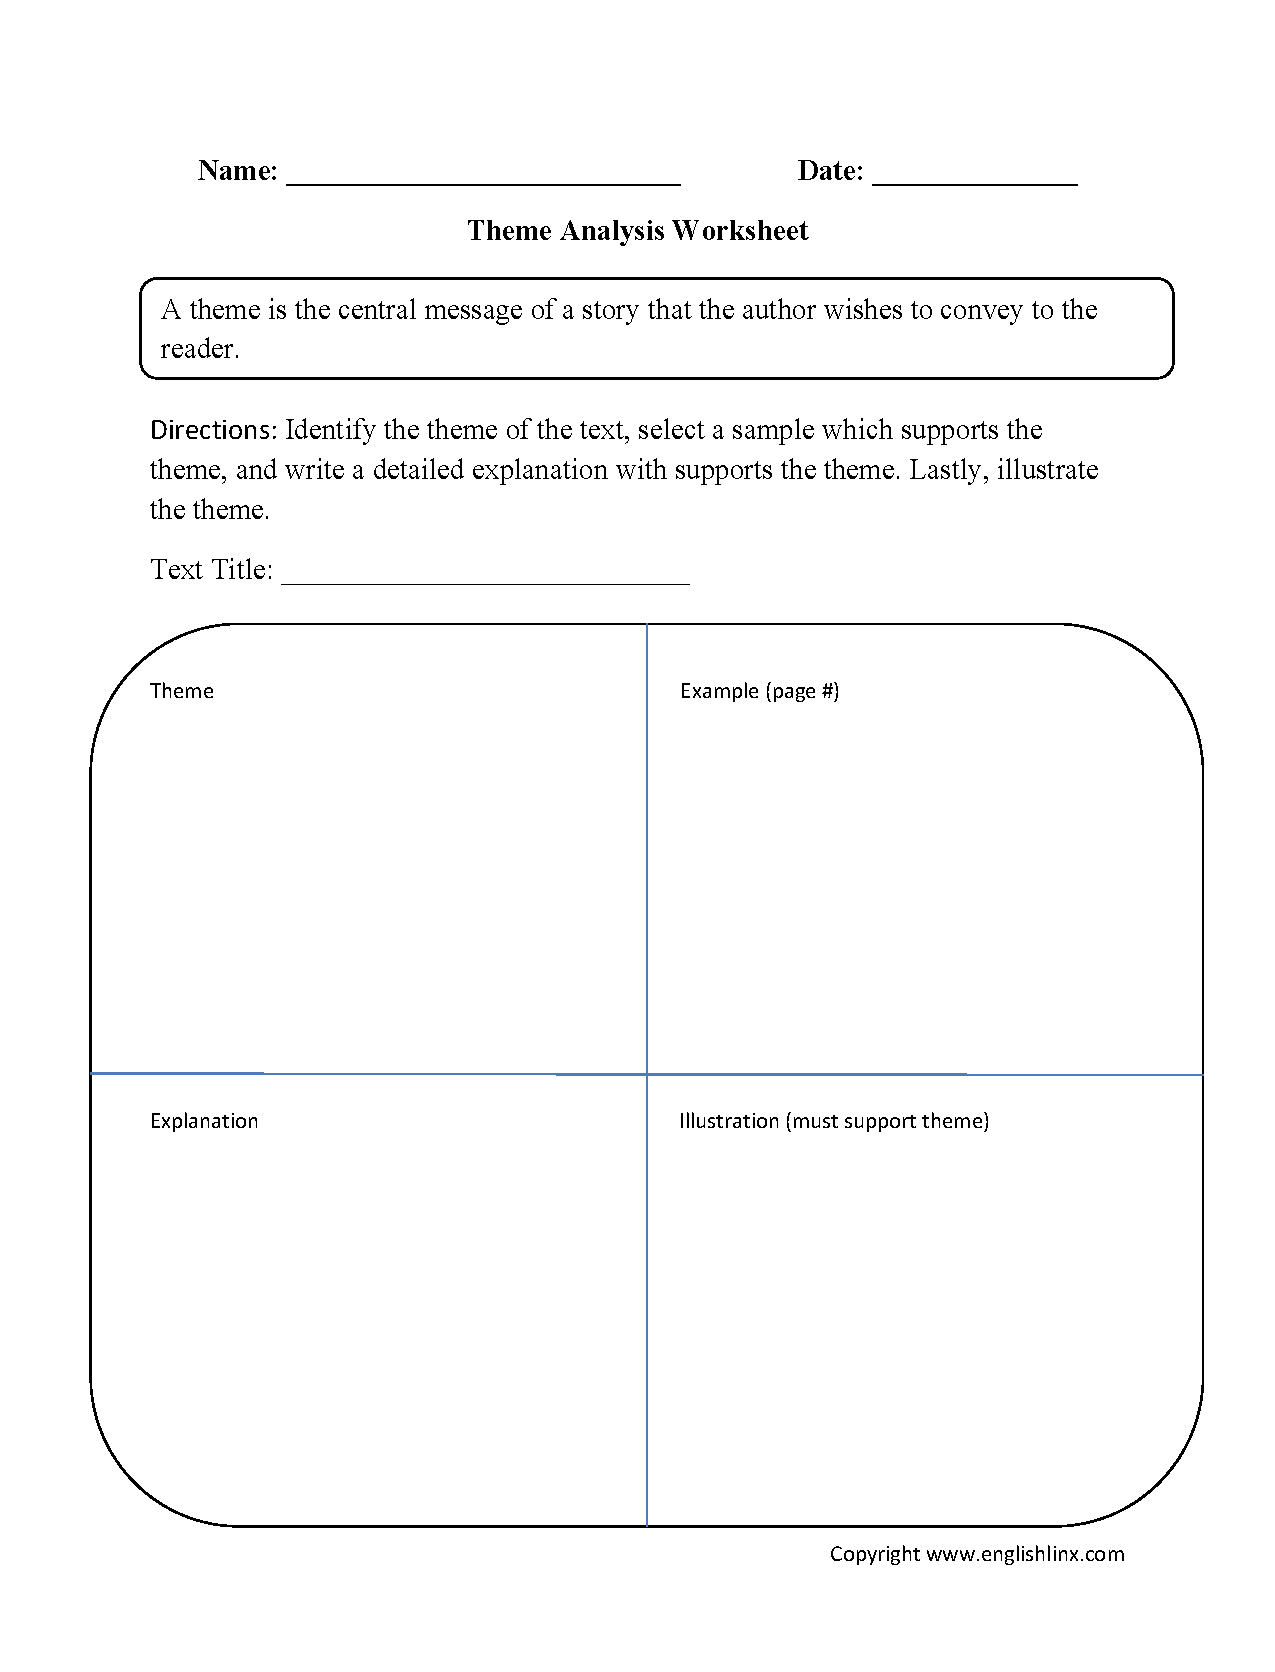 worksheet Art Analysis Worksheet theme analysis worksheet education language arts pinterest this instructs the student to analyze of a given text will how interacts